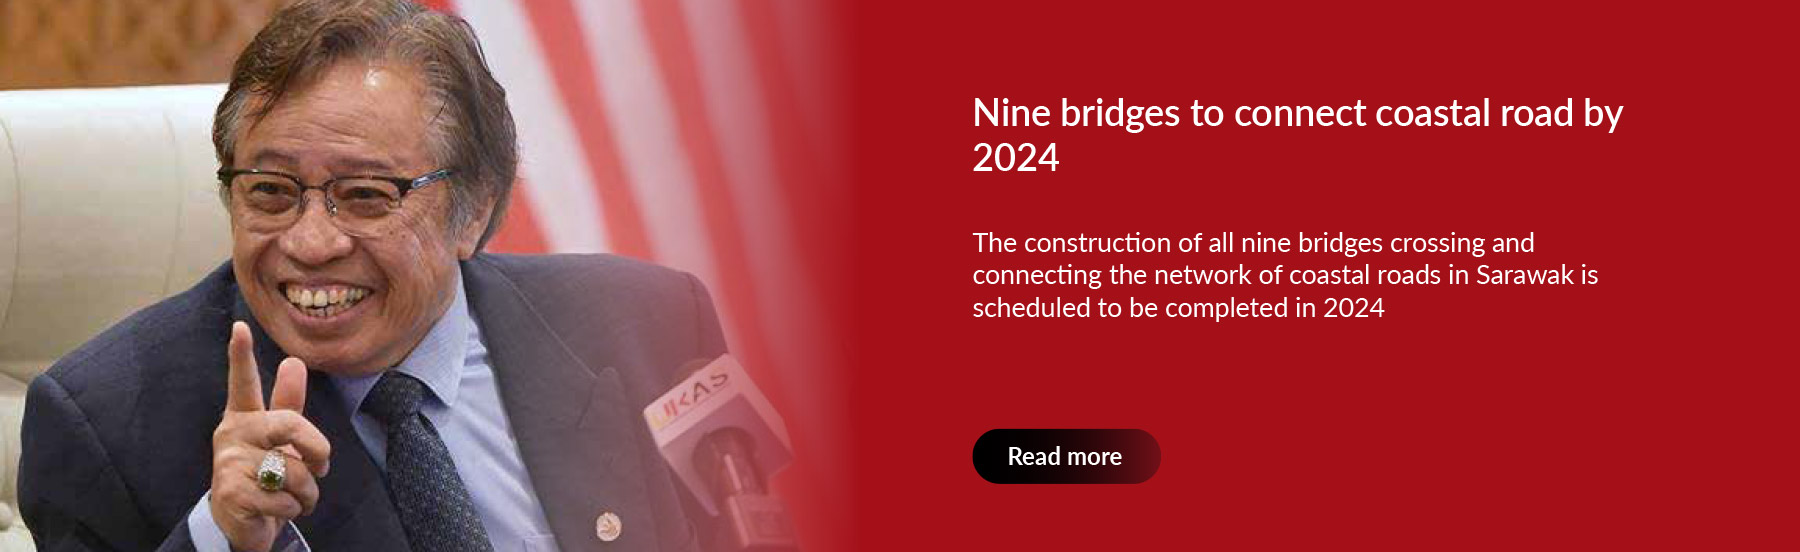 Nine bridges to connect coastal road by 2024